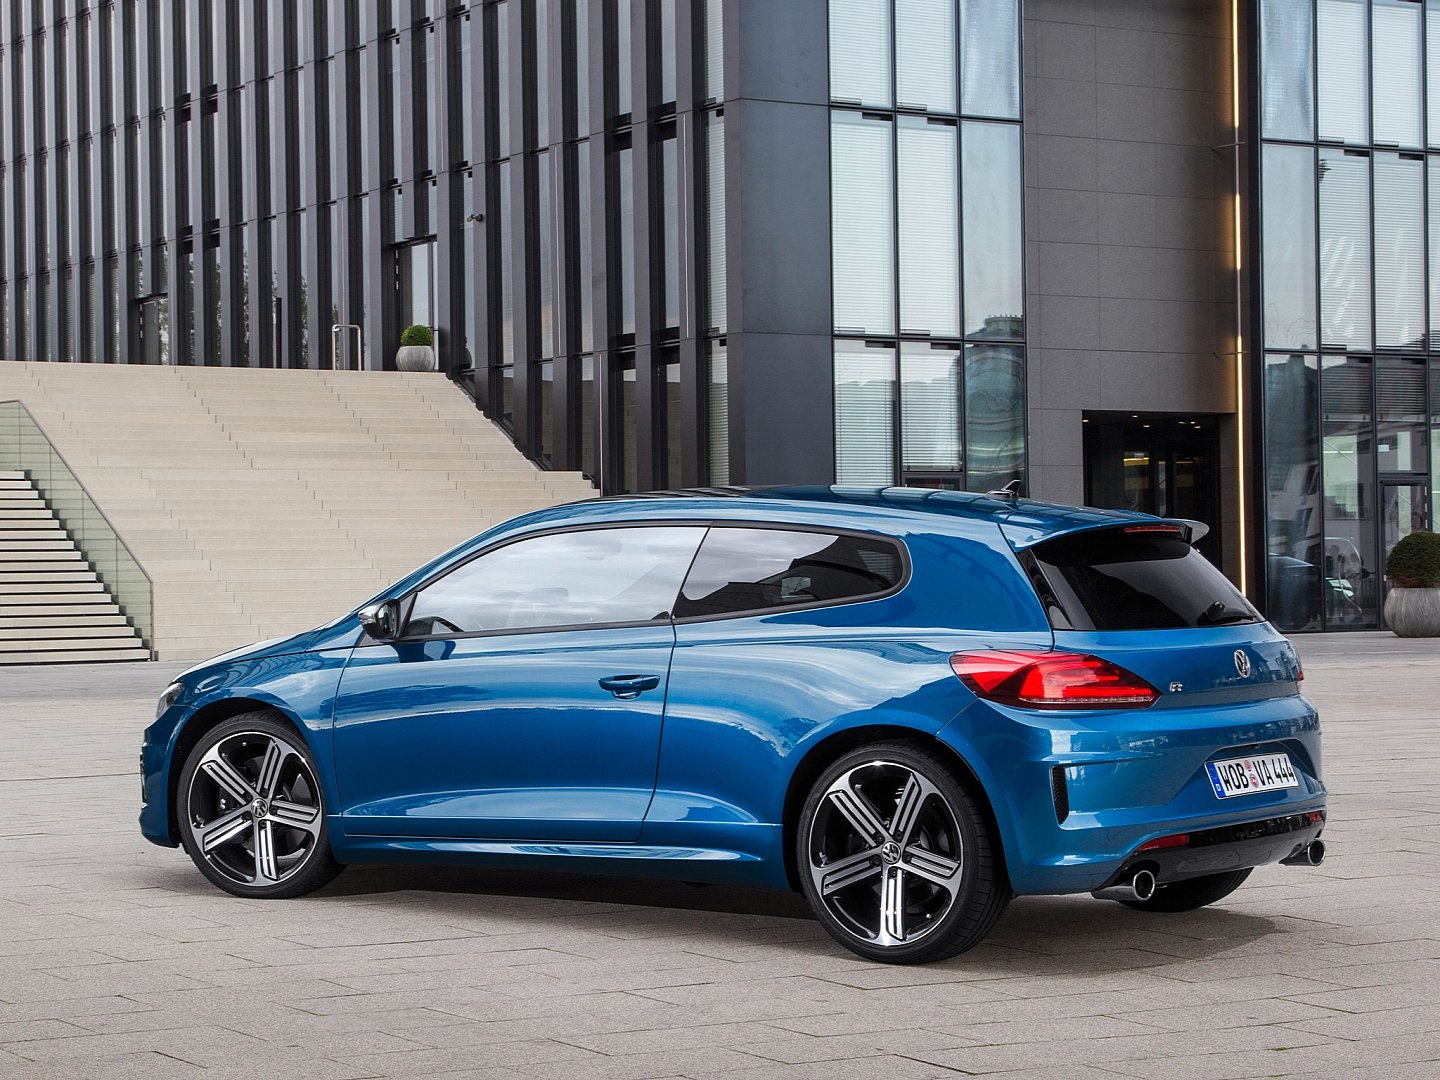 scirocco-radditional-20-ps-accelerates-06-seconds-faster-to-100-km-h-than-its-predecessor-1080p-13